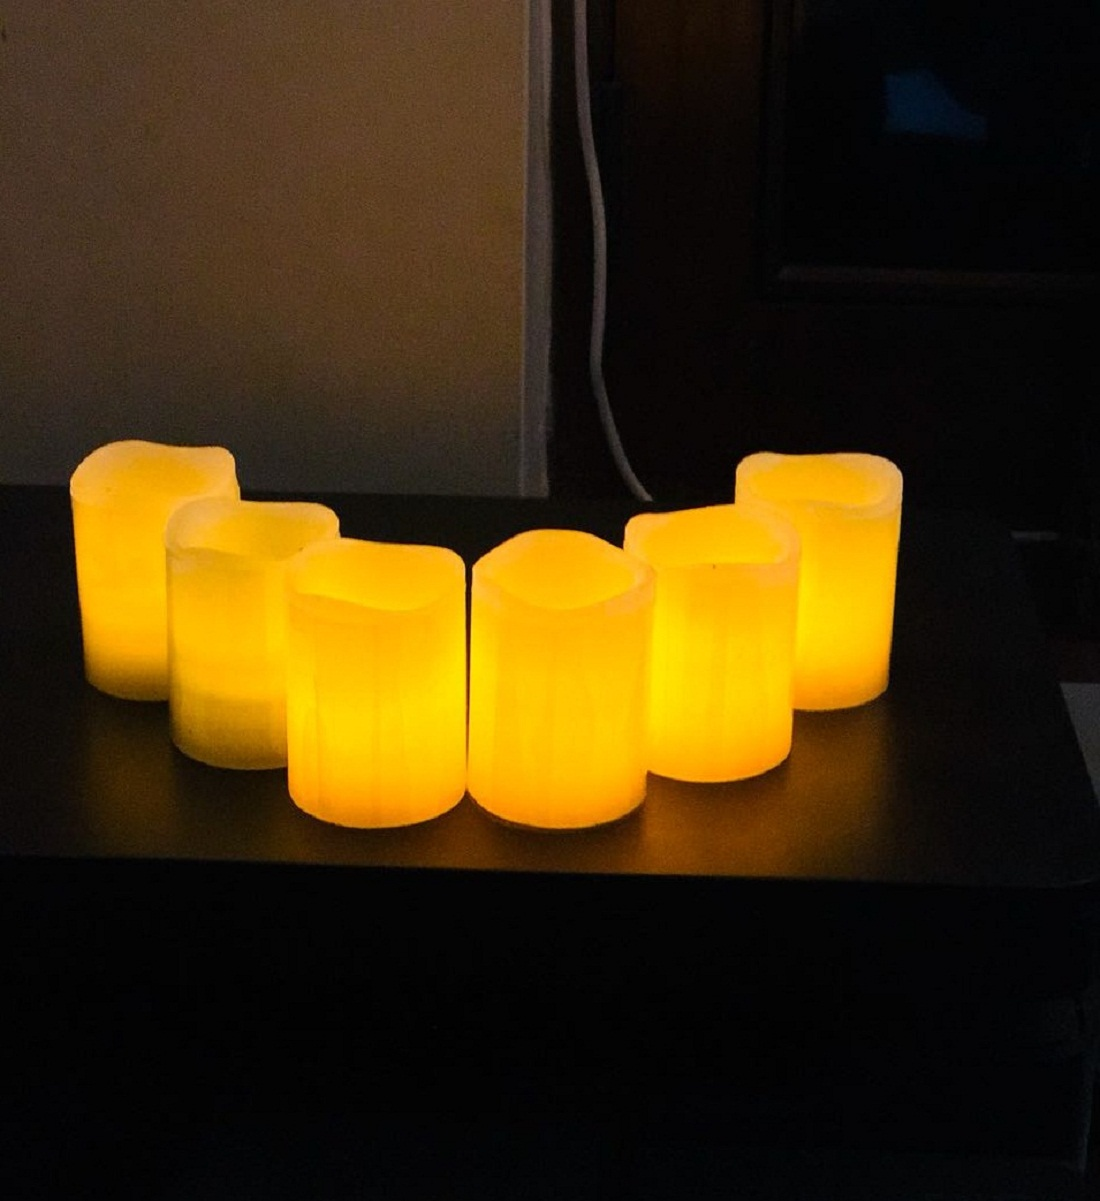 rianz2 Pack Of 12 Led Candle Smoke Free Yellow Led Color Battery Operated For Diwali Home Dcor, Wedding Anniversary, Birthday, Valentine Day Decoration